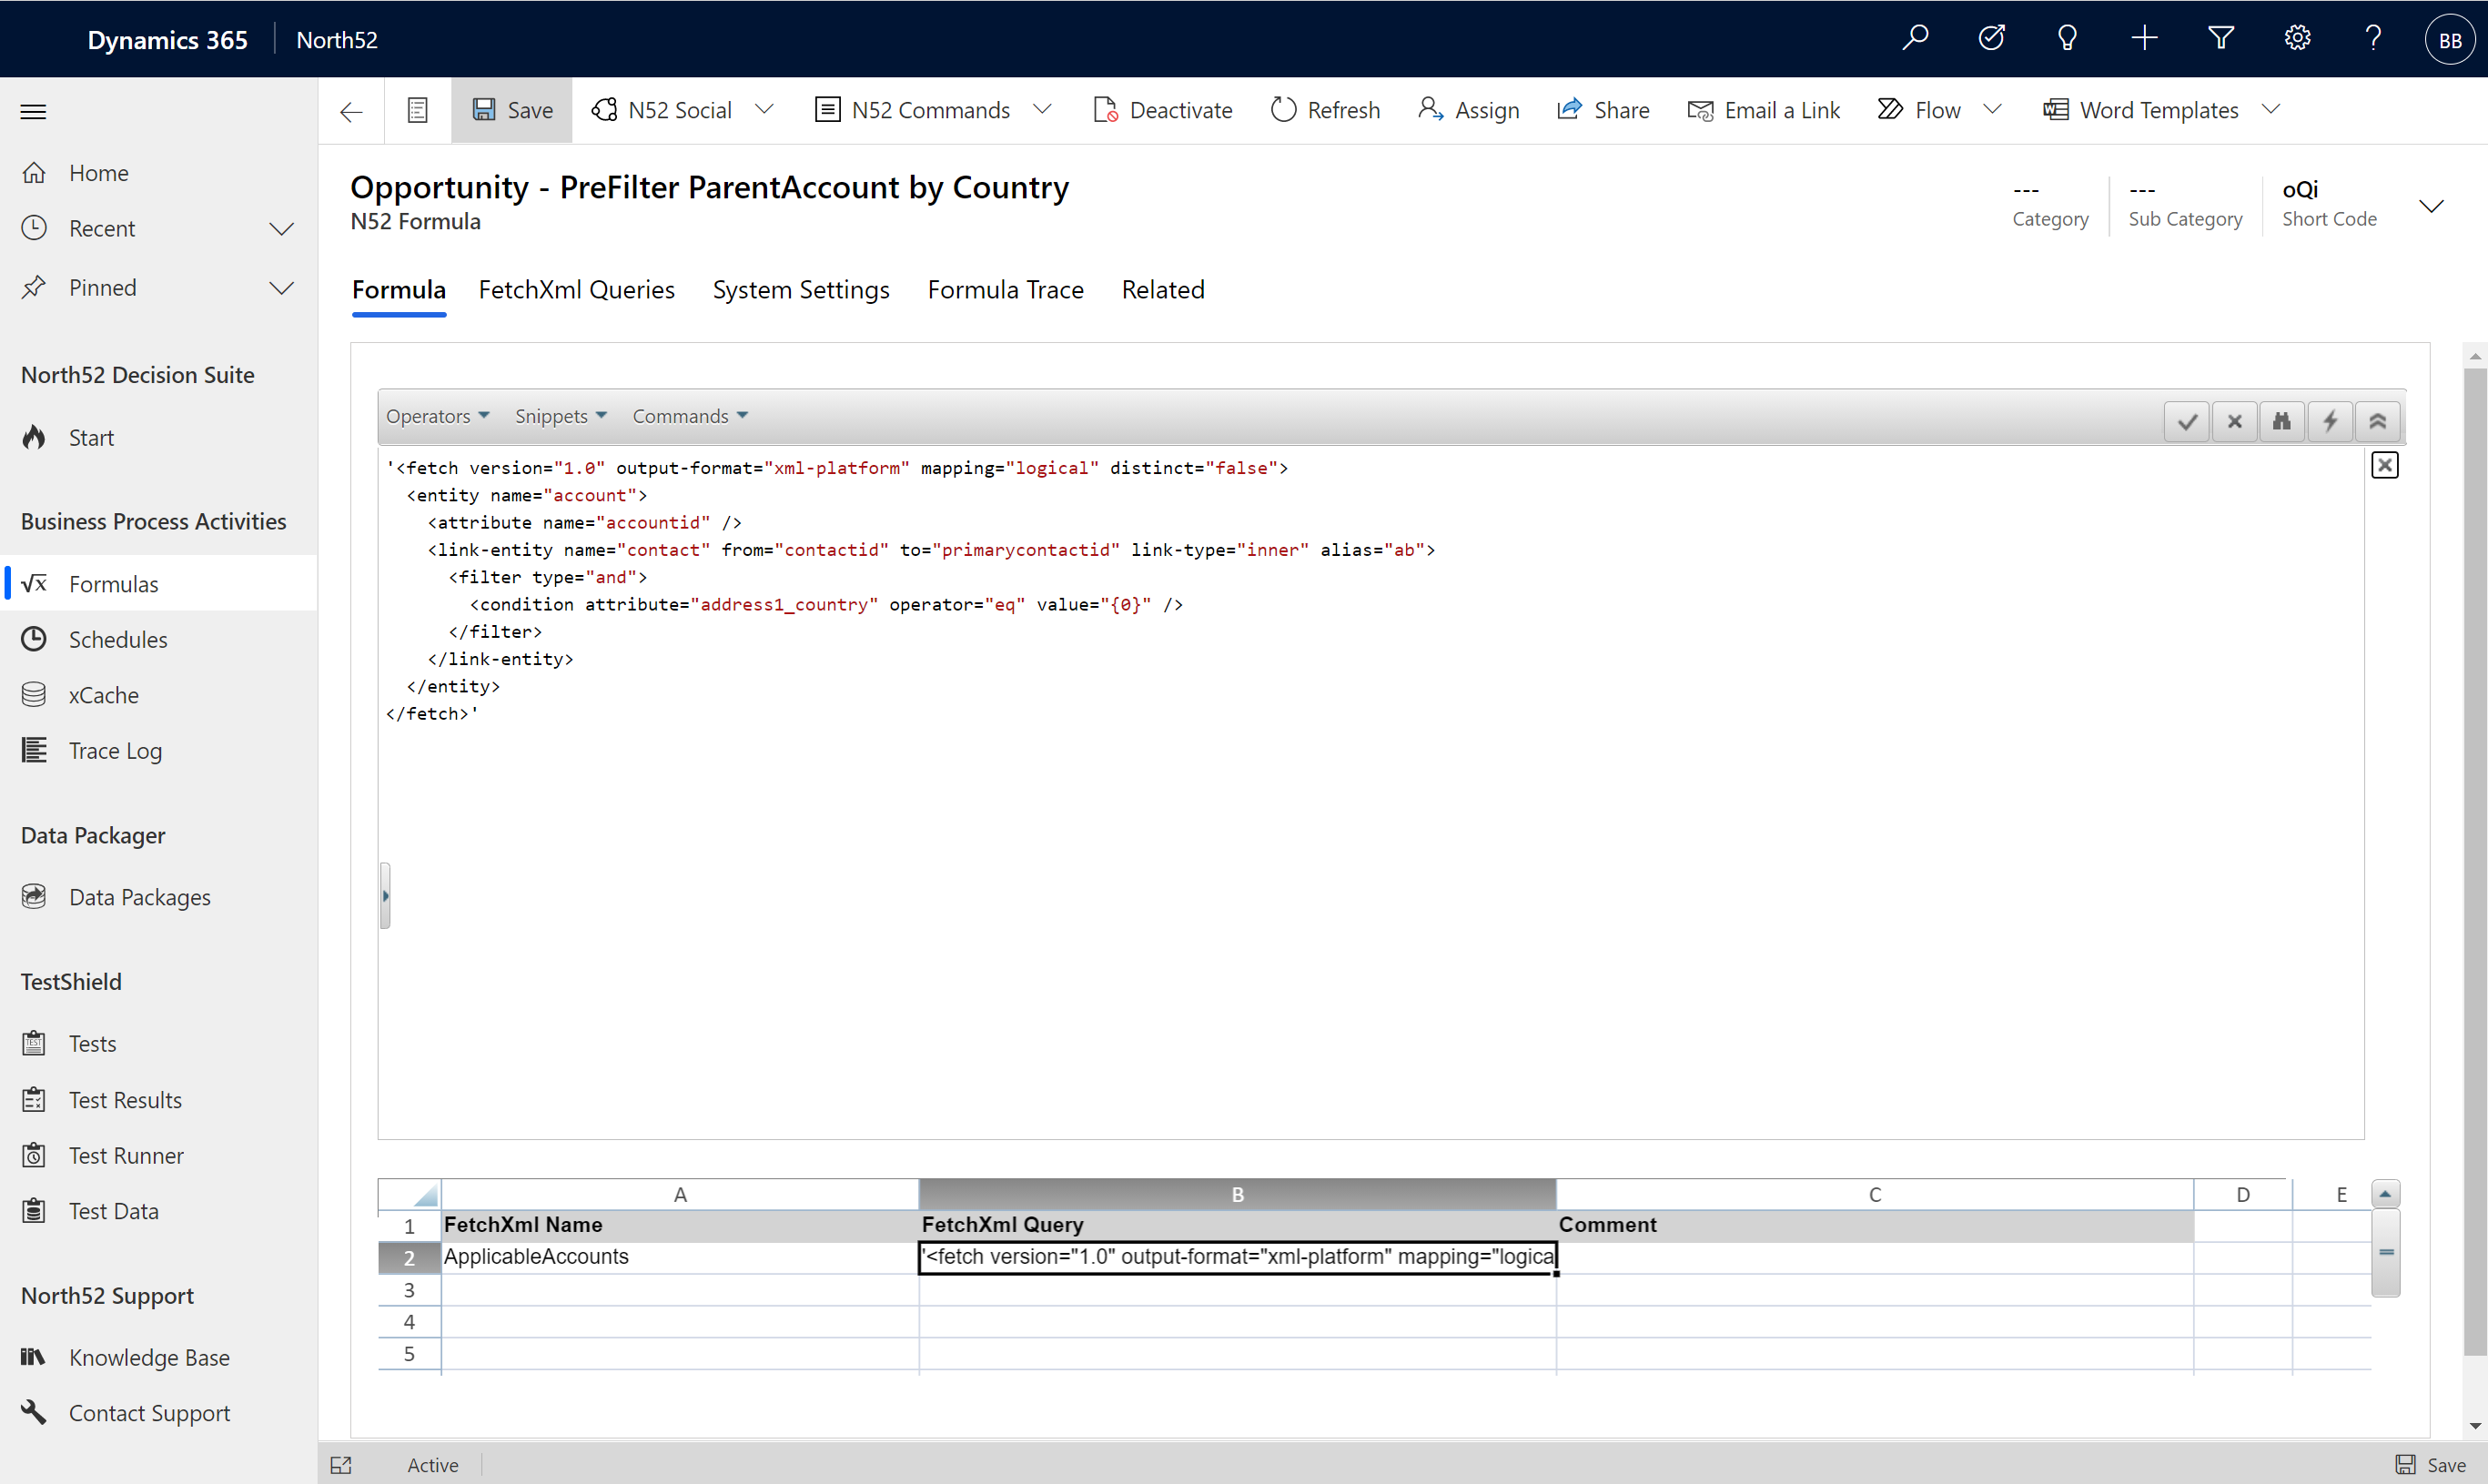 North52 Business Rules Engine for Dynamics 365 - AddPreFilterLookup